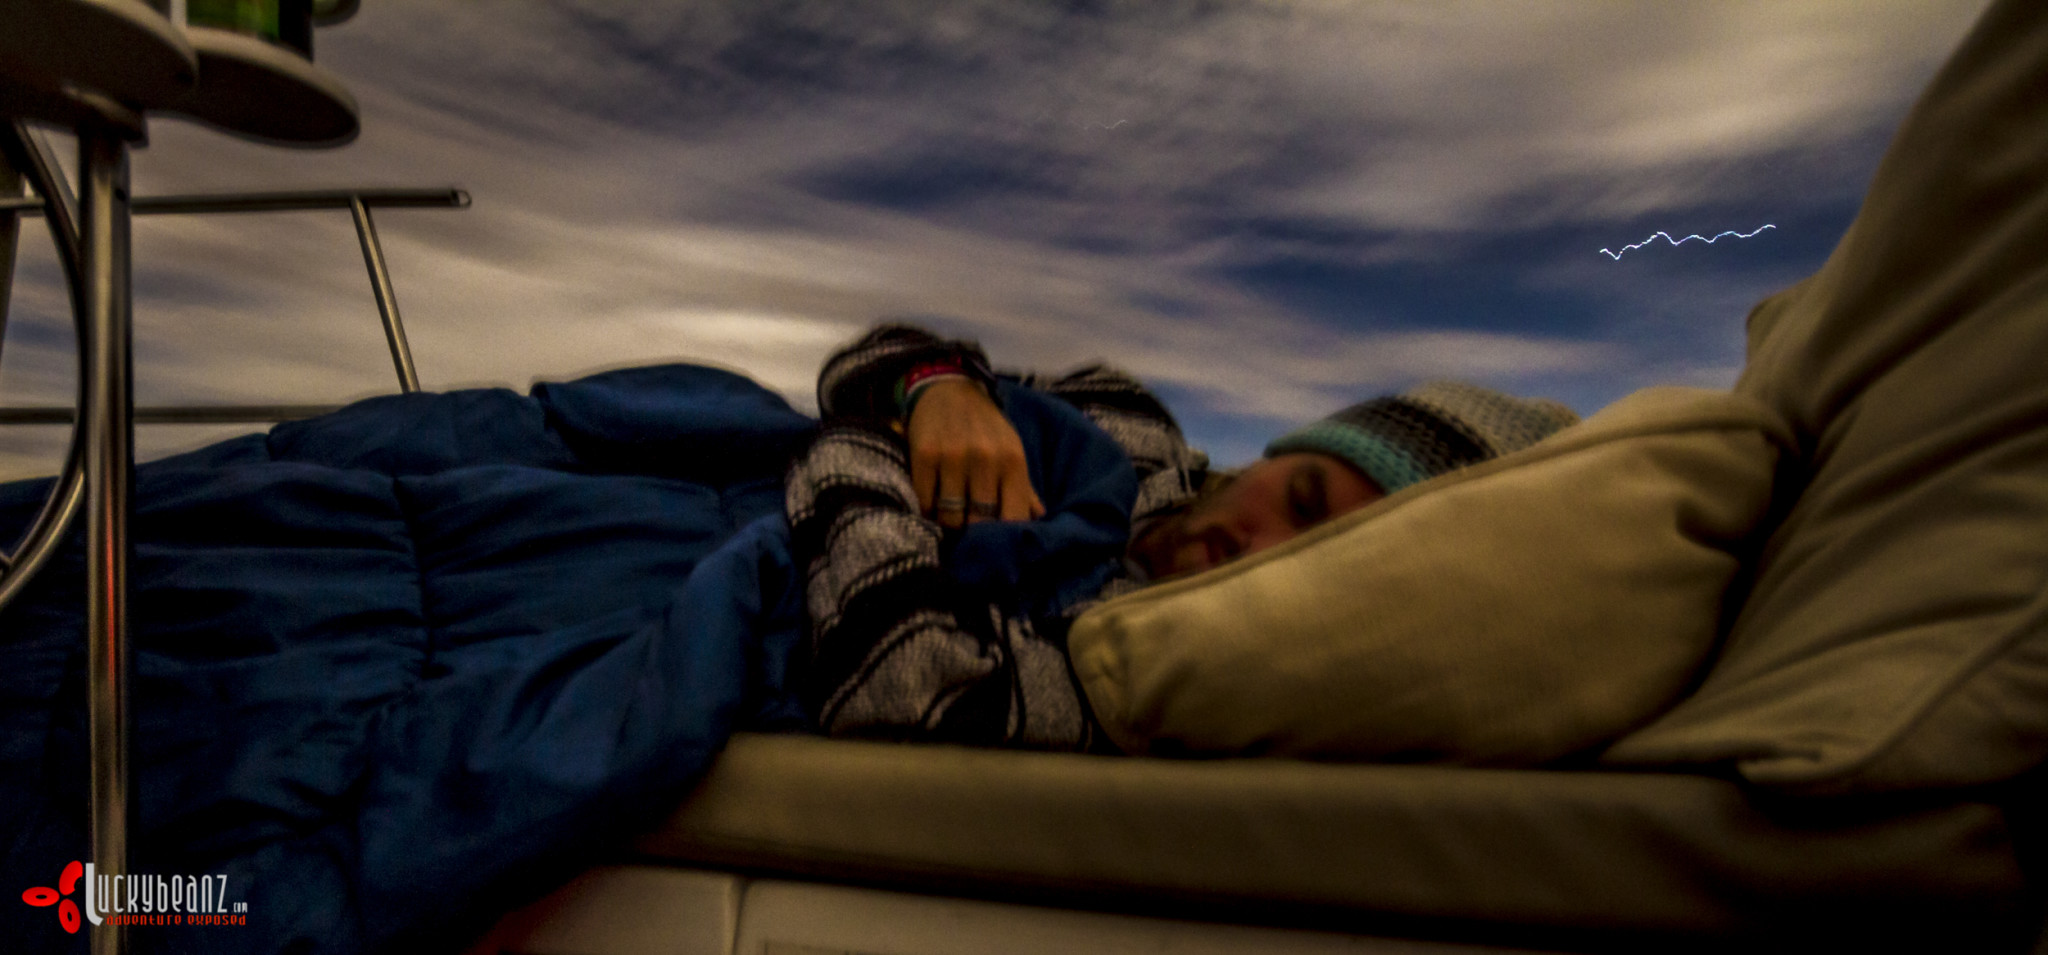 Sleeping outside under the eclipsing moon.